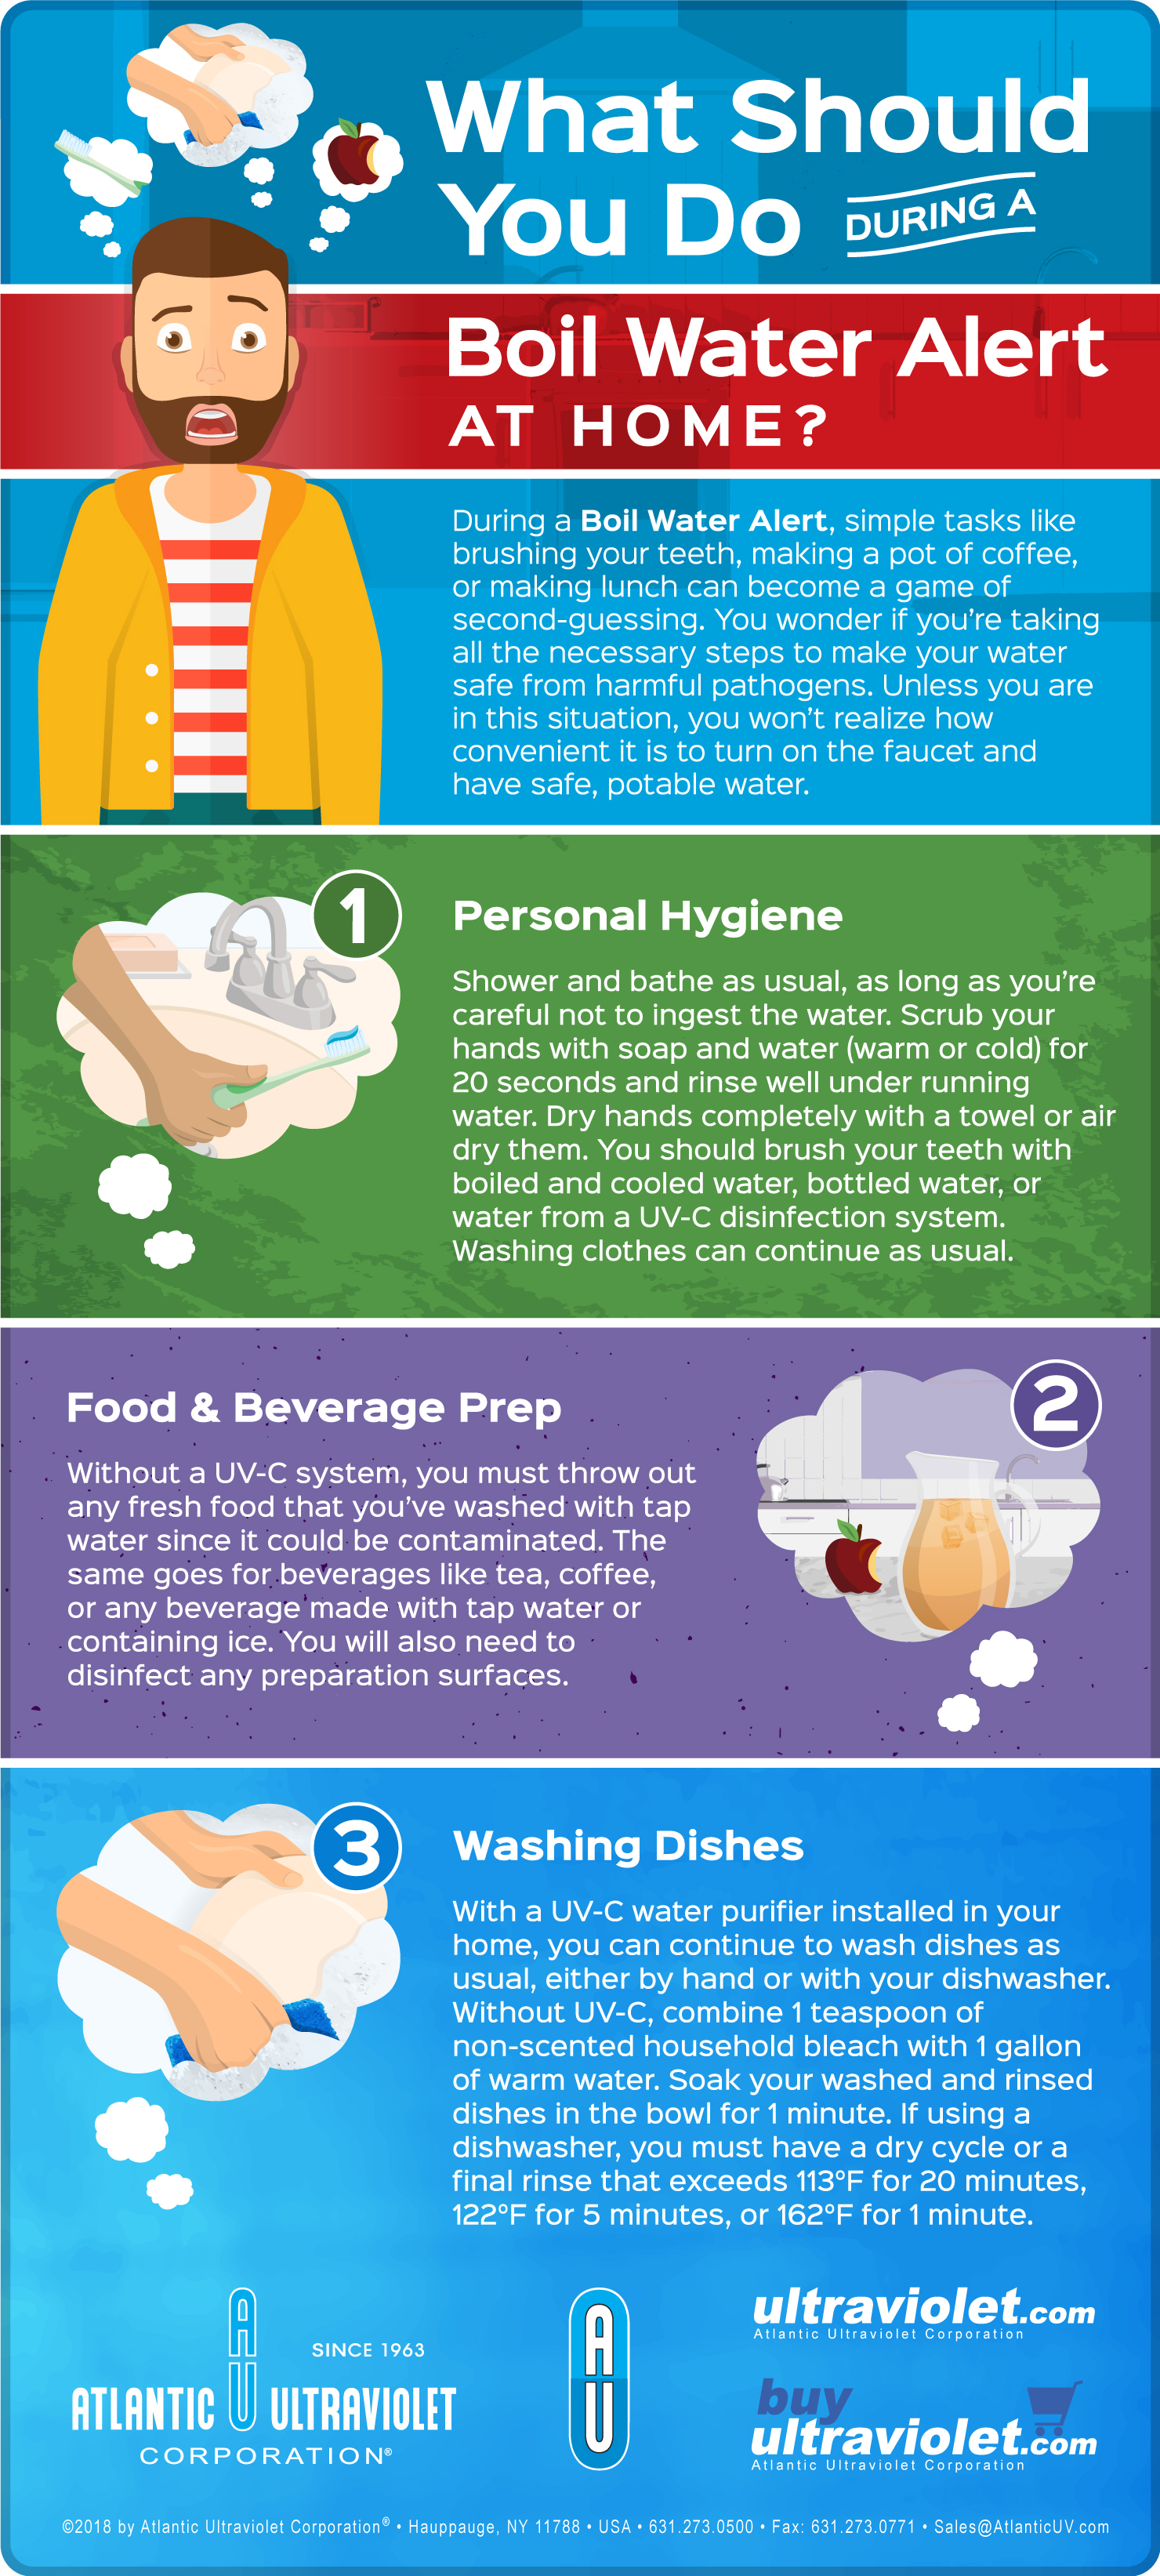 What Should You Do During a Boil Water Alert at Home? - Infographic